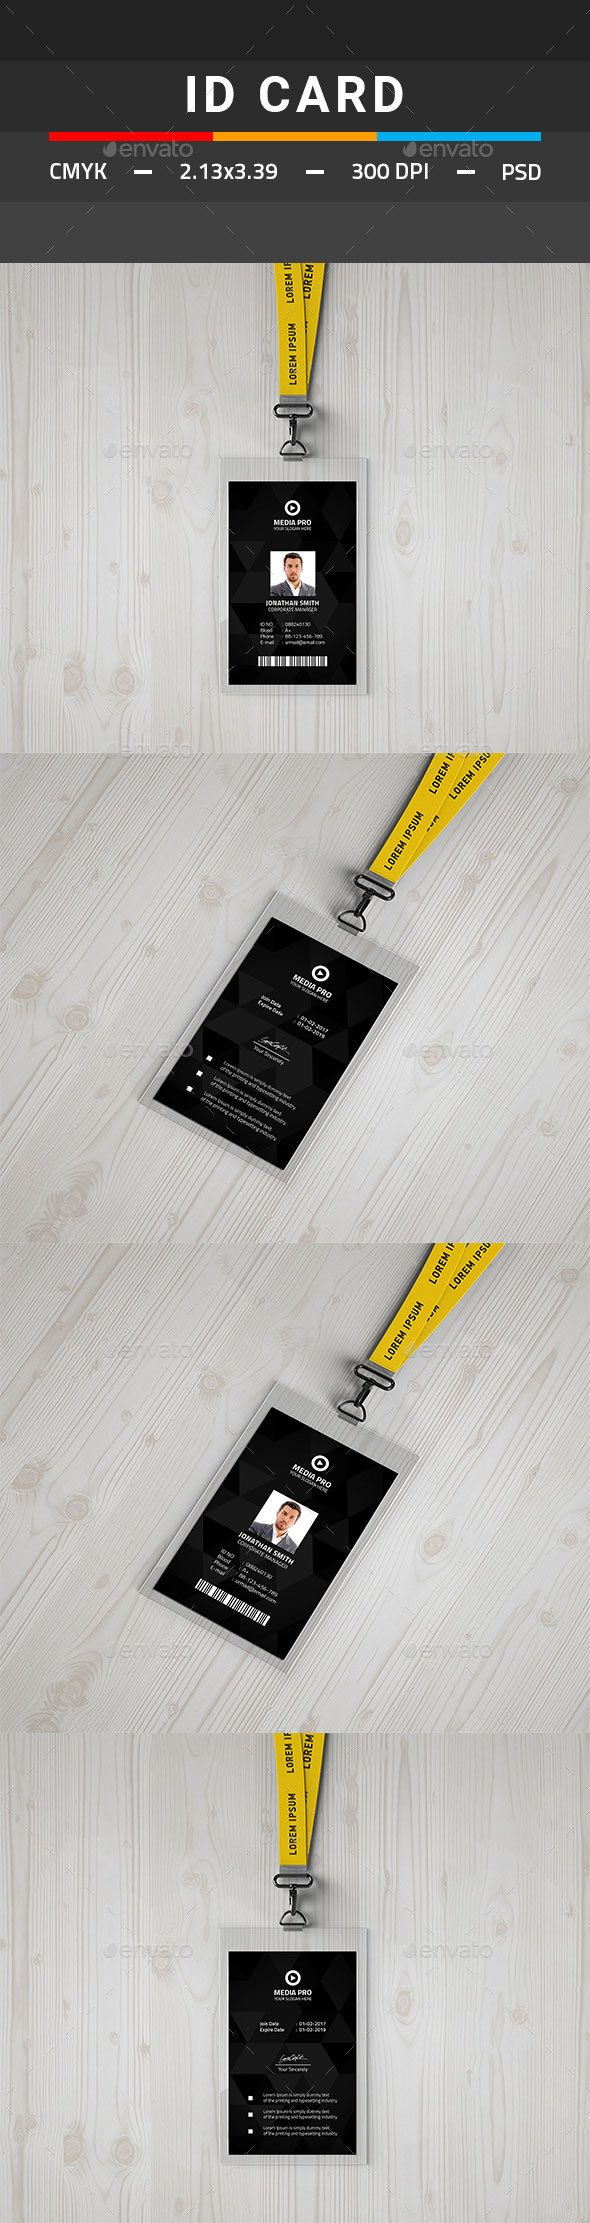 ID Card | Pinterest | Print templates, Template and Card templates